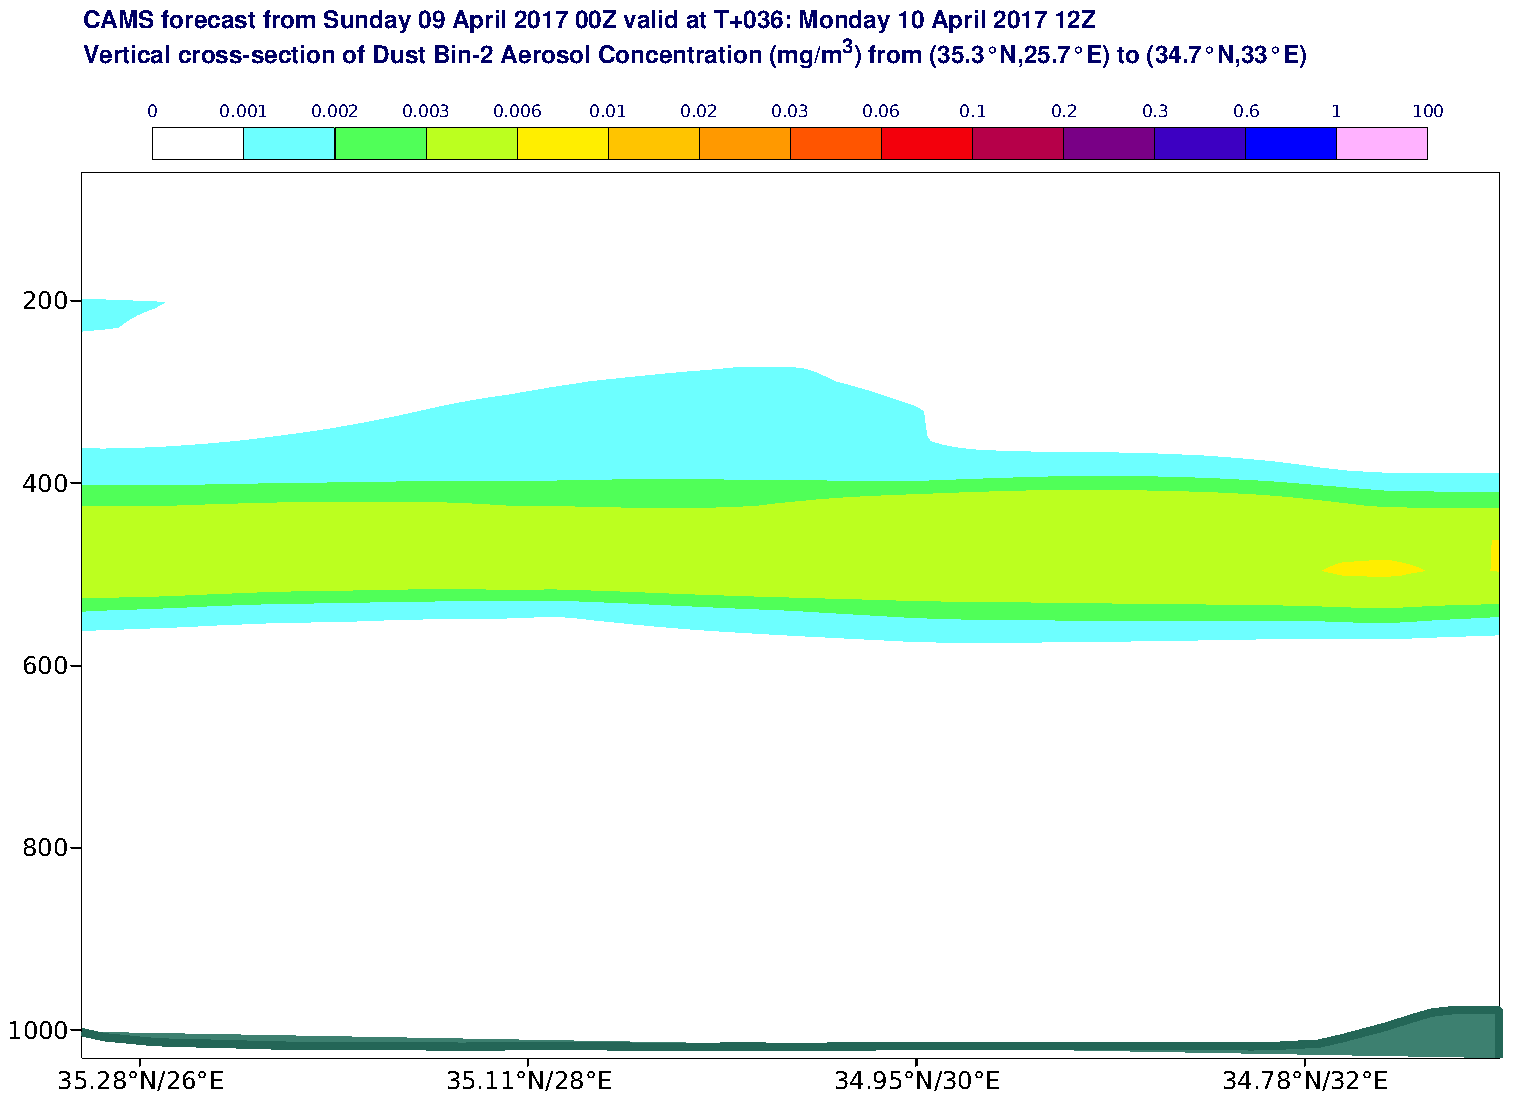 Vertical cross-section of Dust Bin-2 Aerosol Concentration (mg/m3) valid at T36 - 2017-04-10 12:00